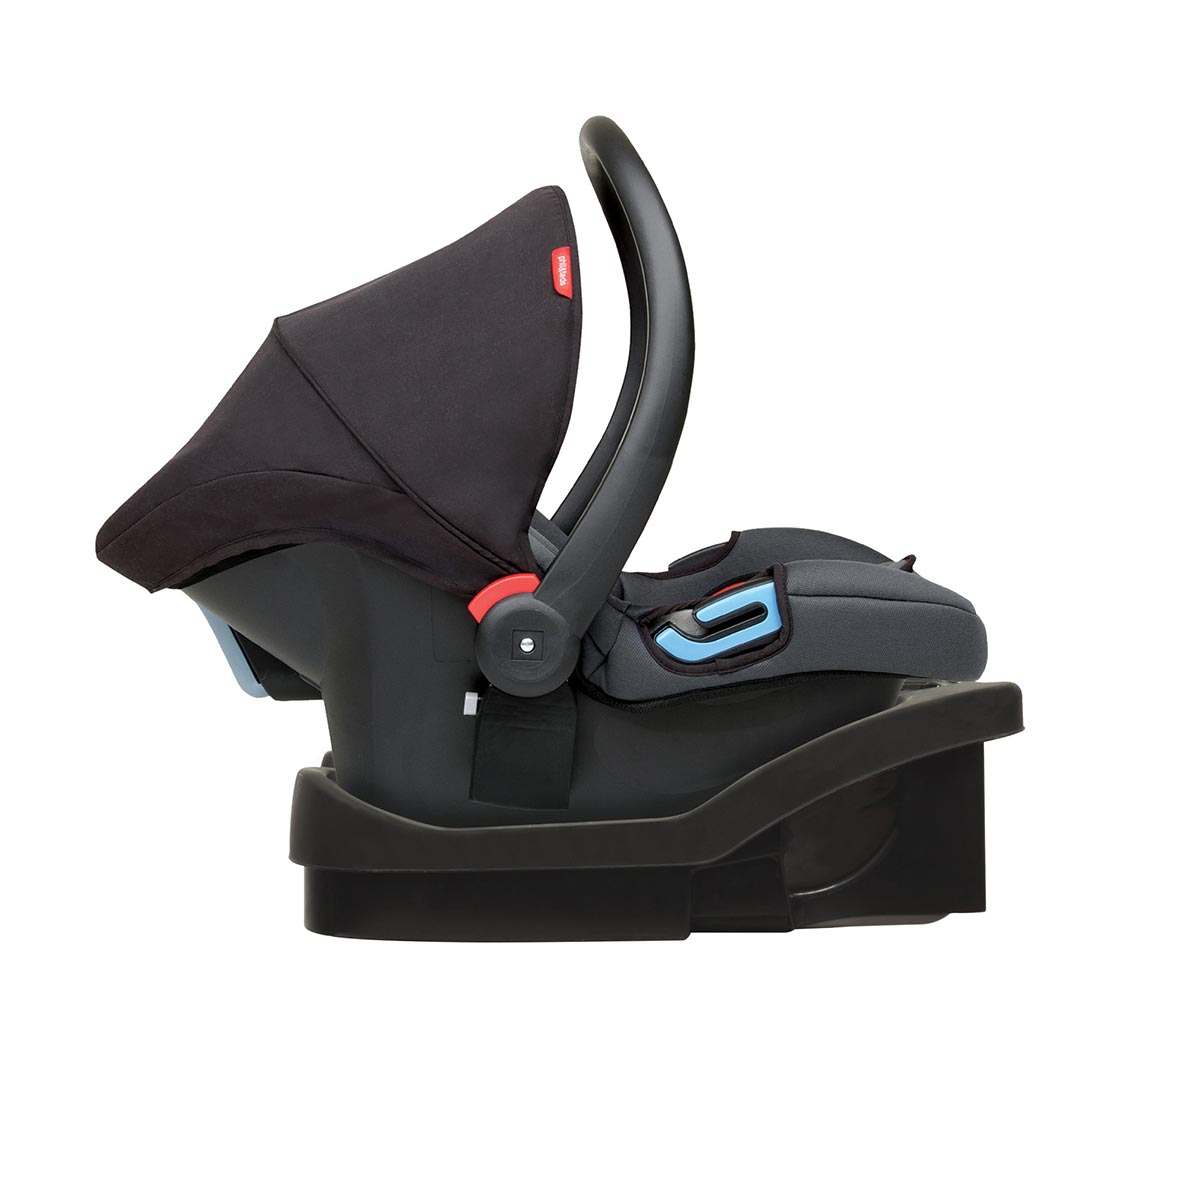 Baby Car Seat Guide How To Buy And Use Safely Baby